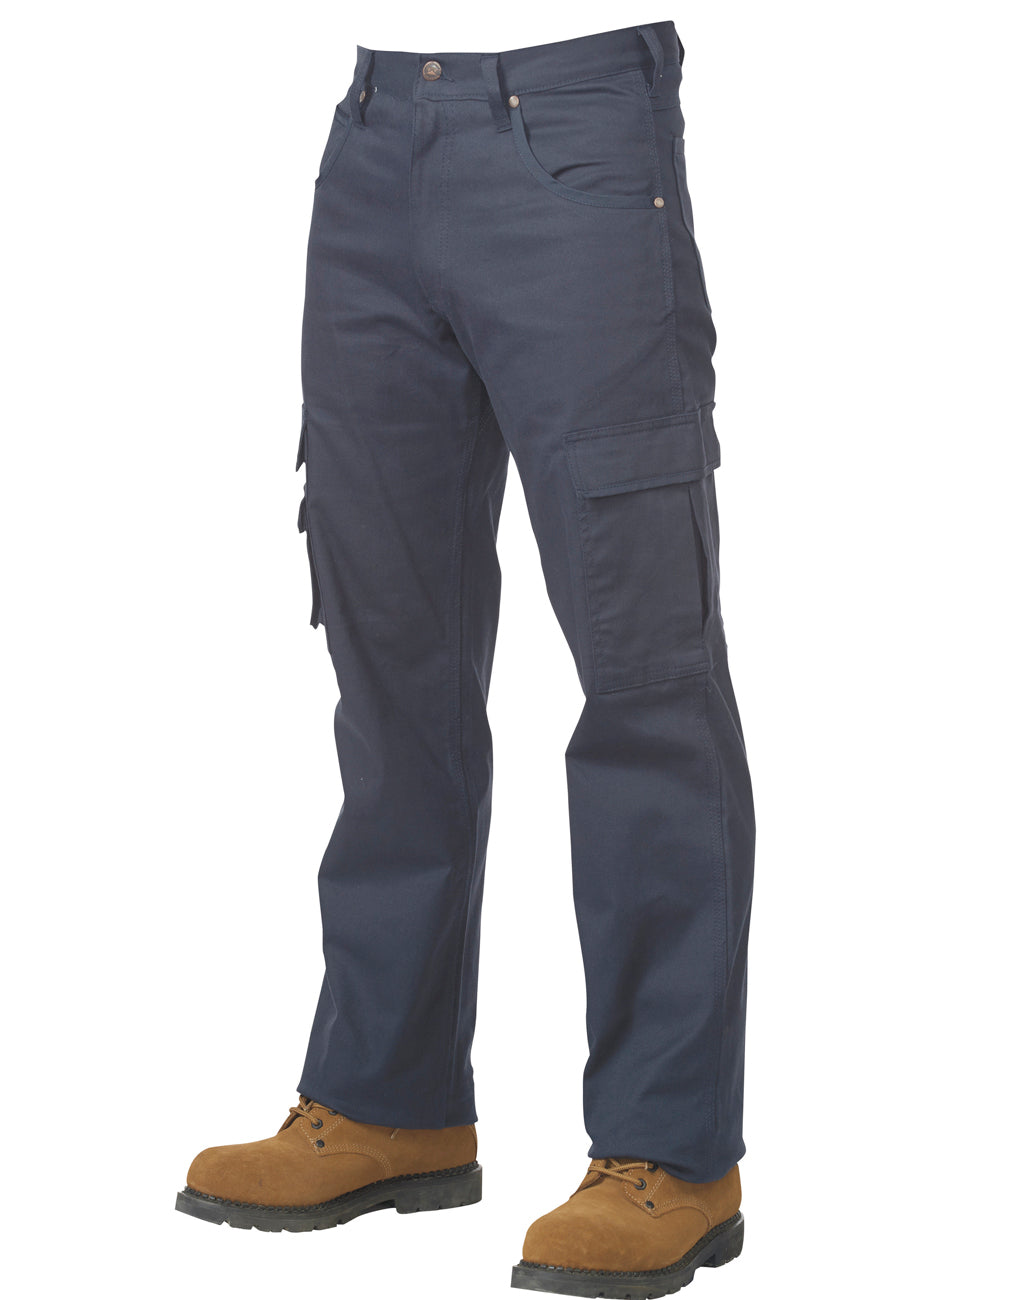 Men's Tough Duck Twill Cargo Pant